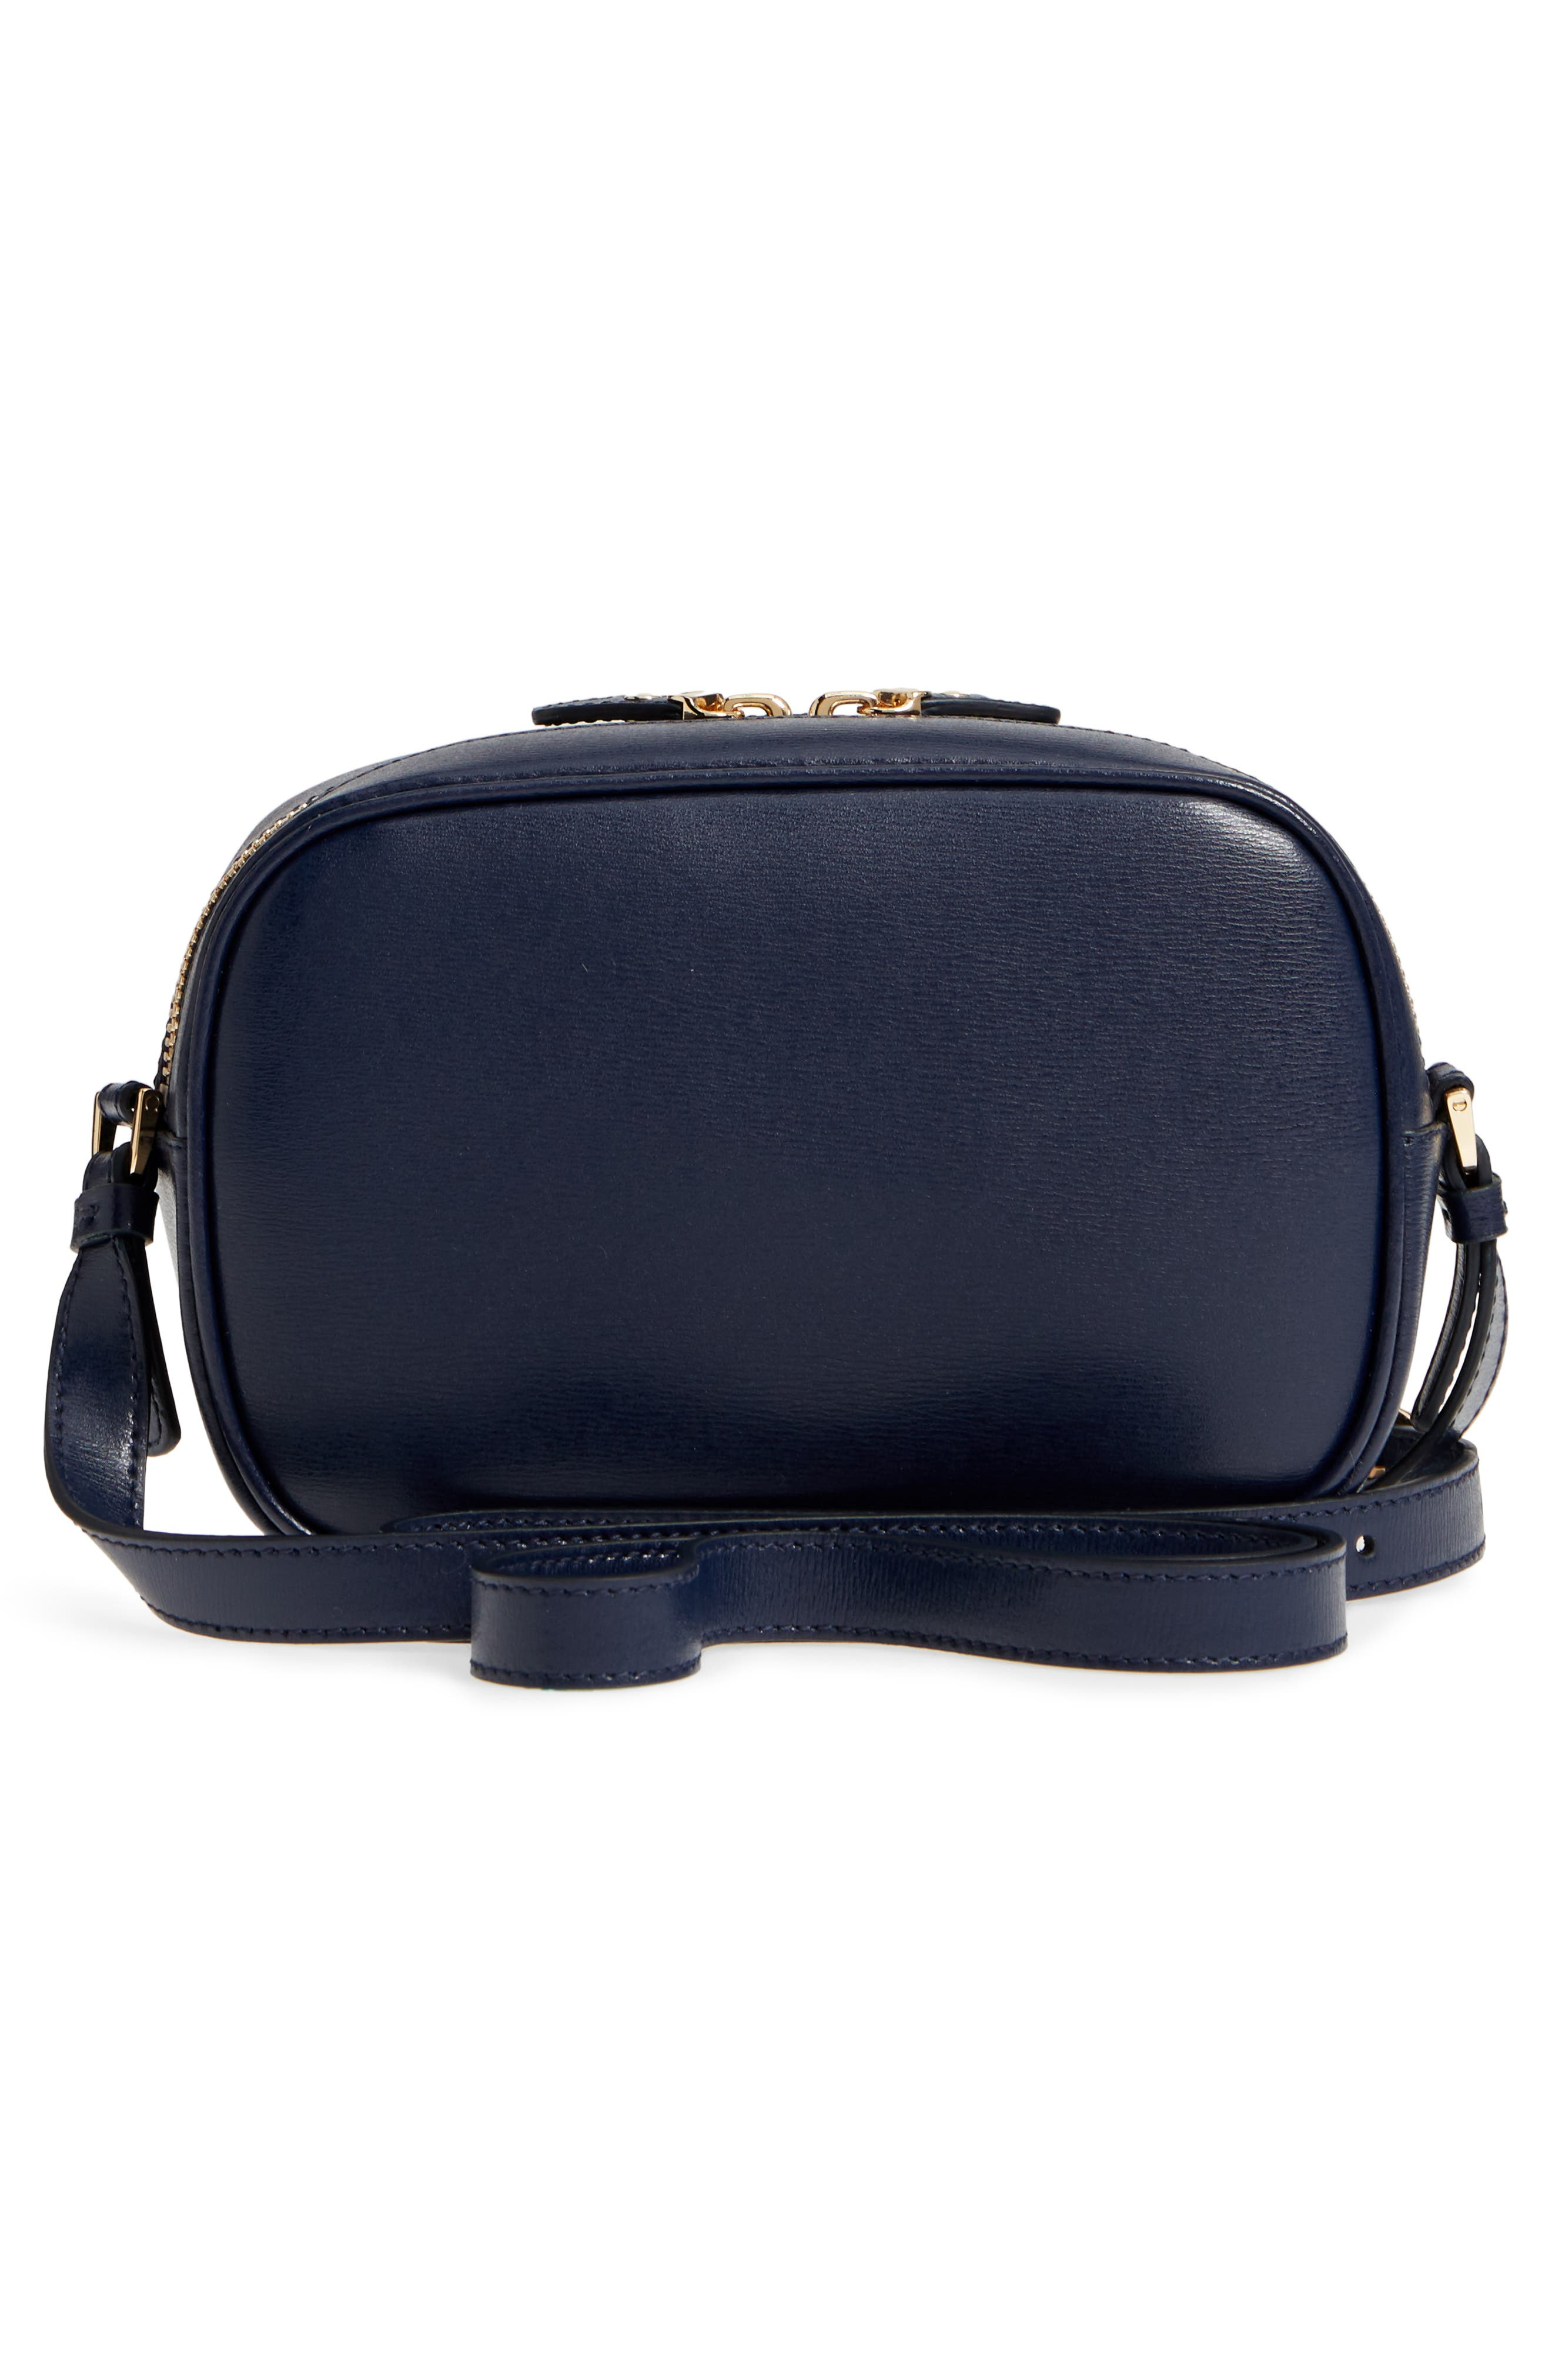 Gancio Metallic Leather Camera Bag,                             Alternate thumbnail 3, color,                             NAVY